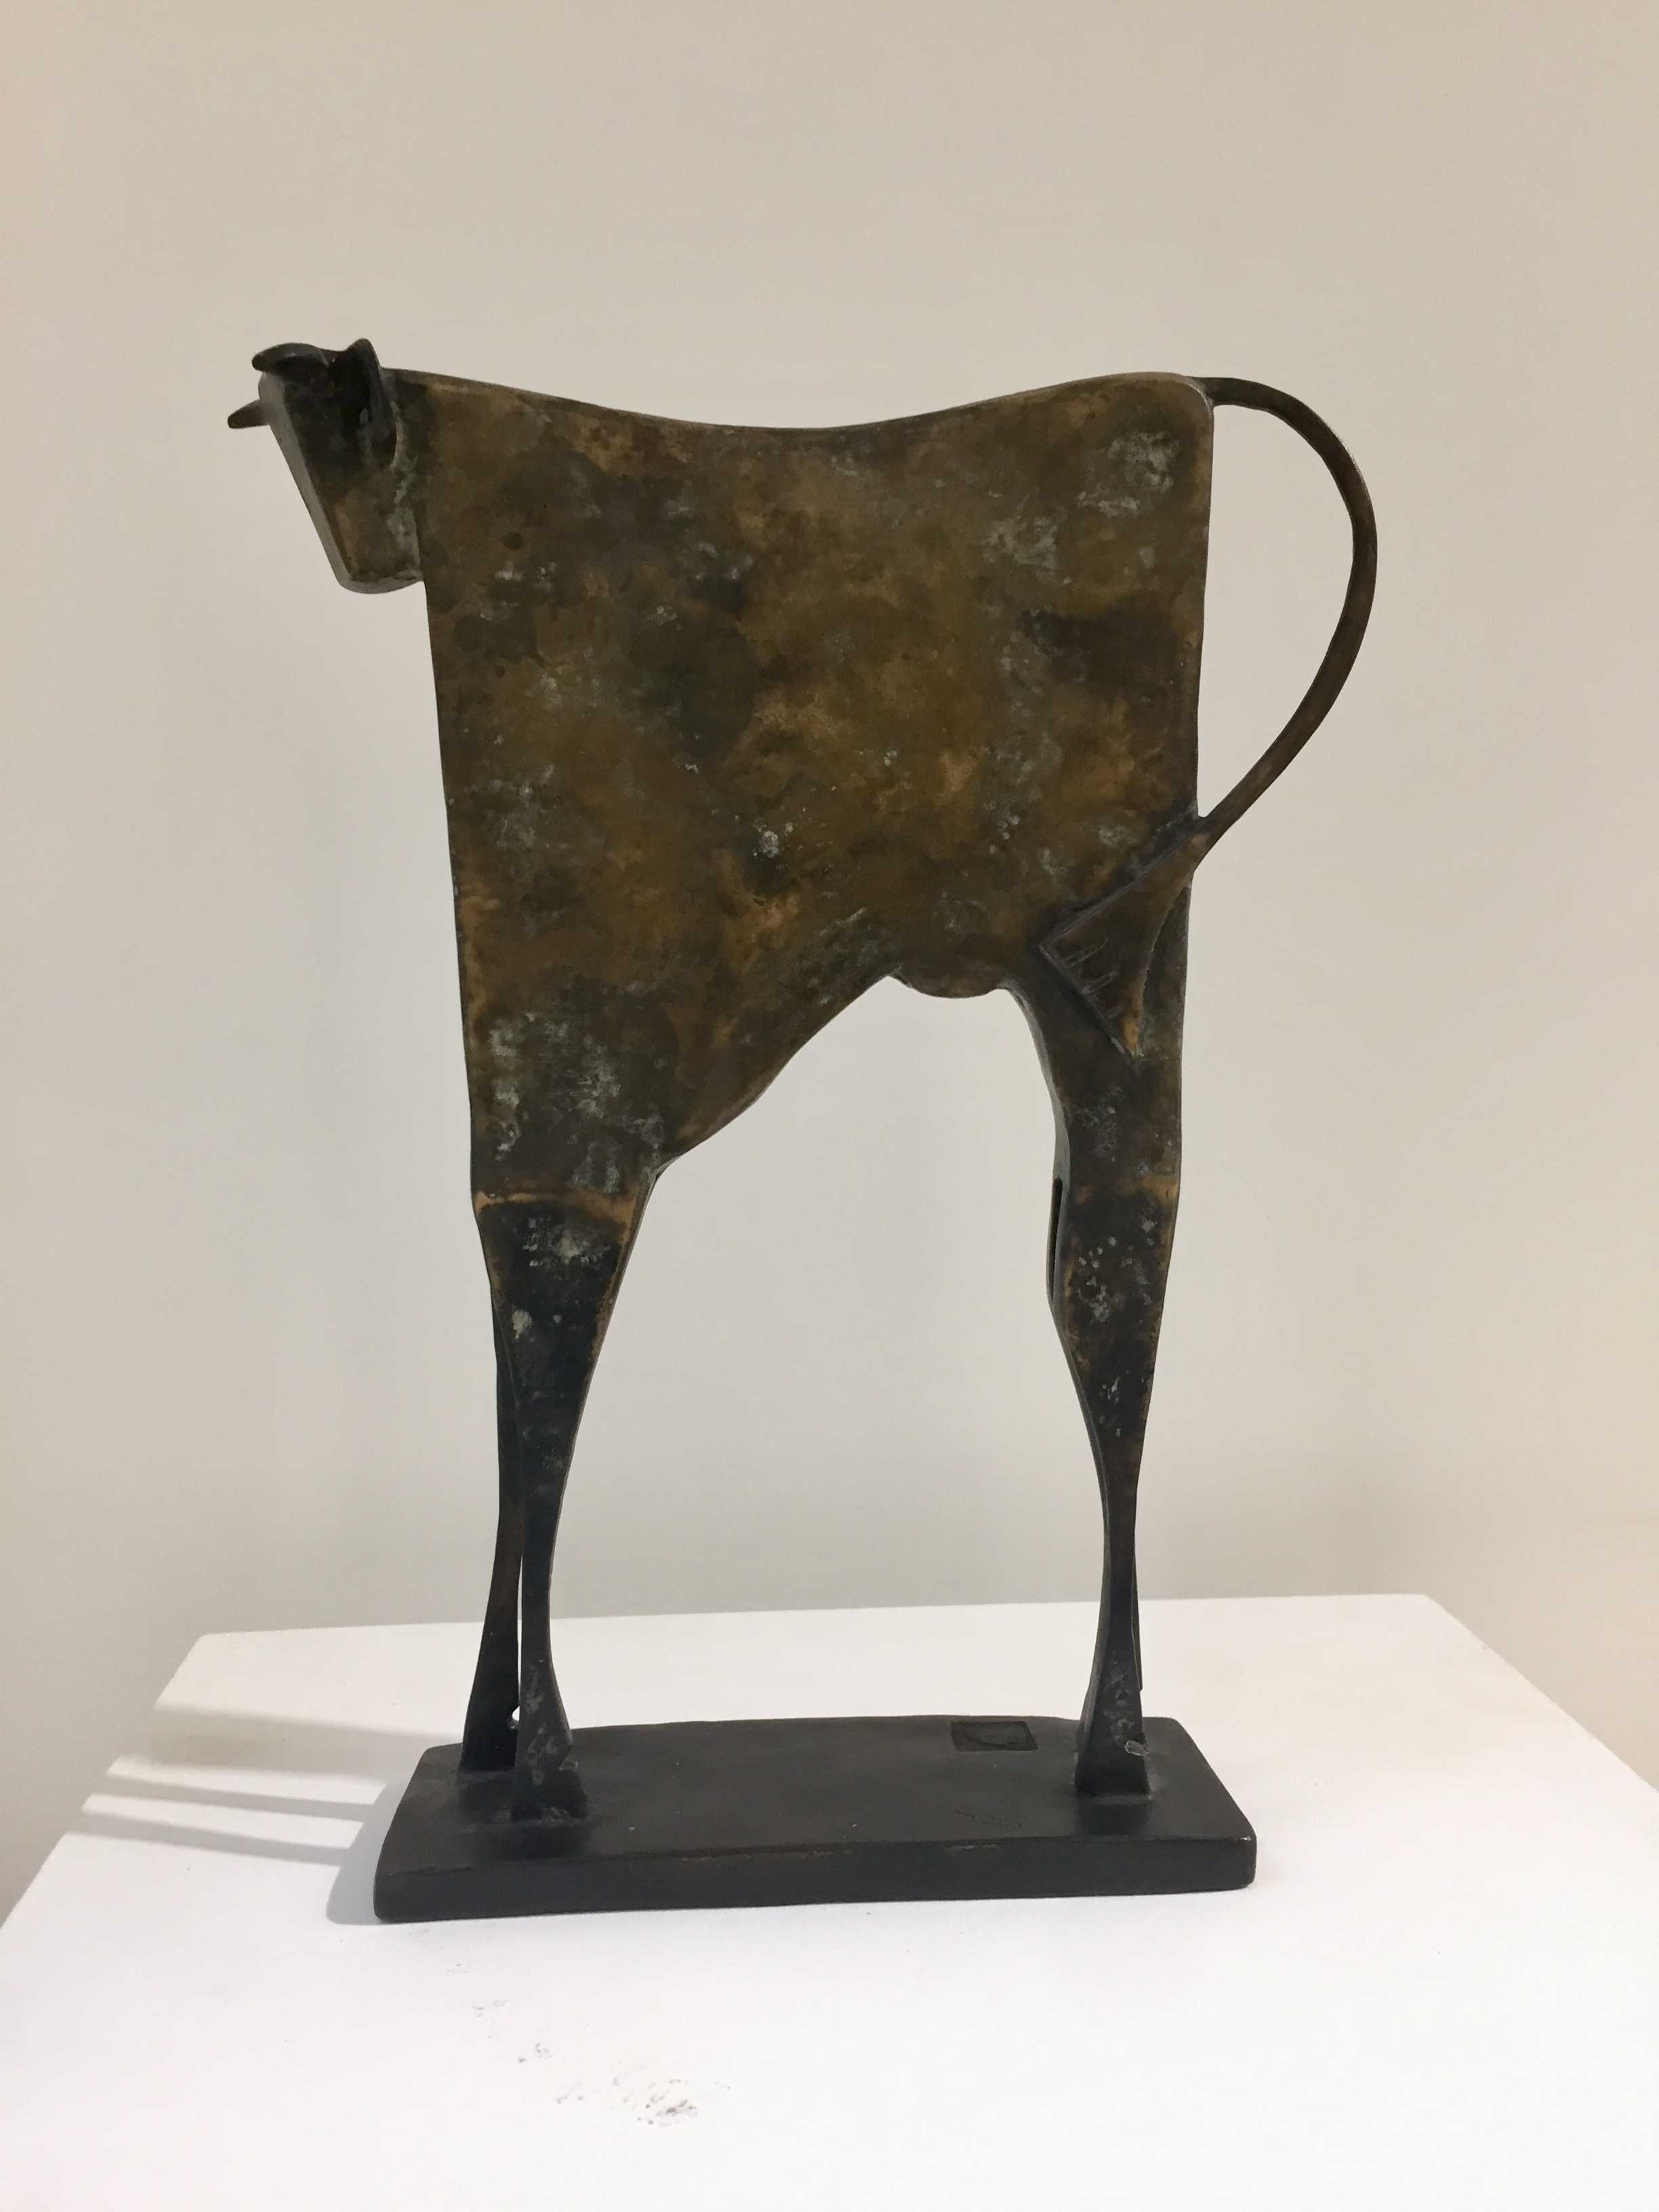 TORO THERIO Bronze 39x30x9cm / 15,3x11,8x3,5 inches